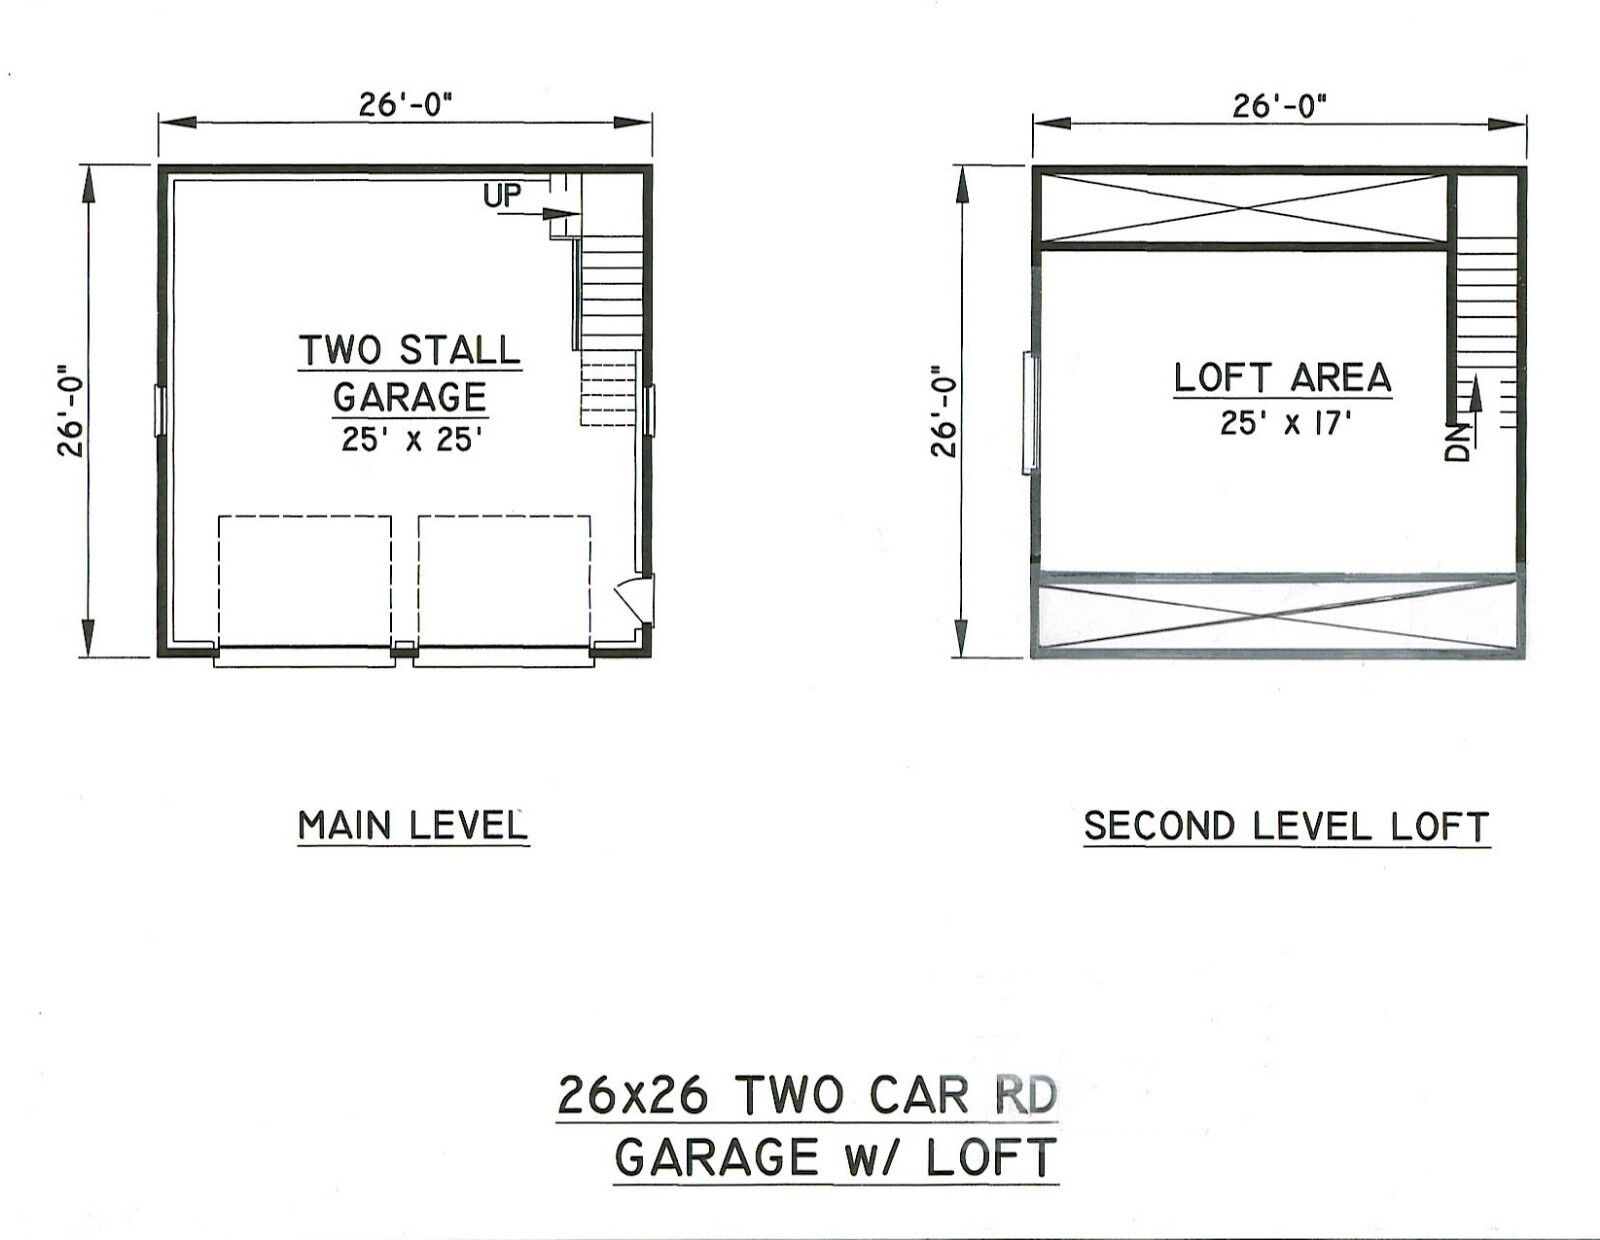 26x26 2 car rd garage building blueprint plans w wkplft